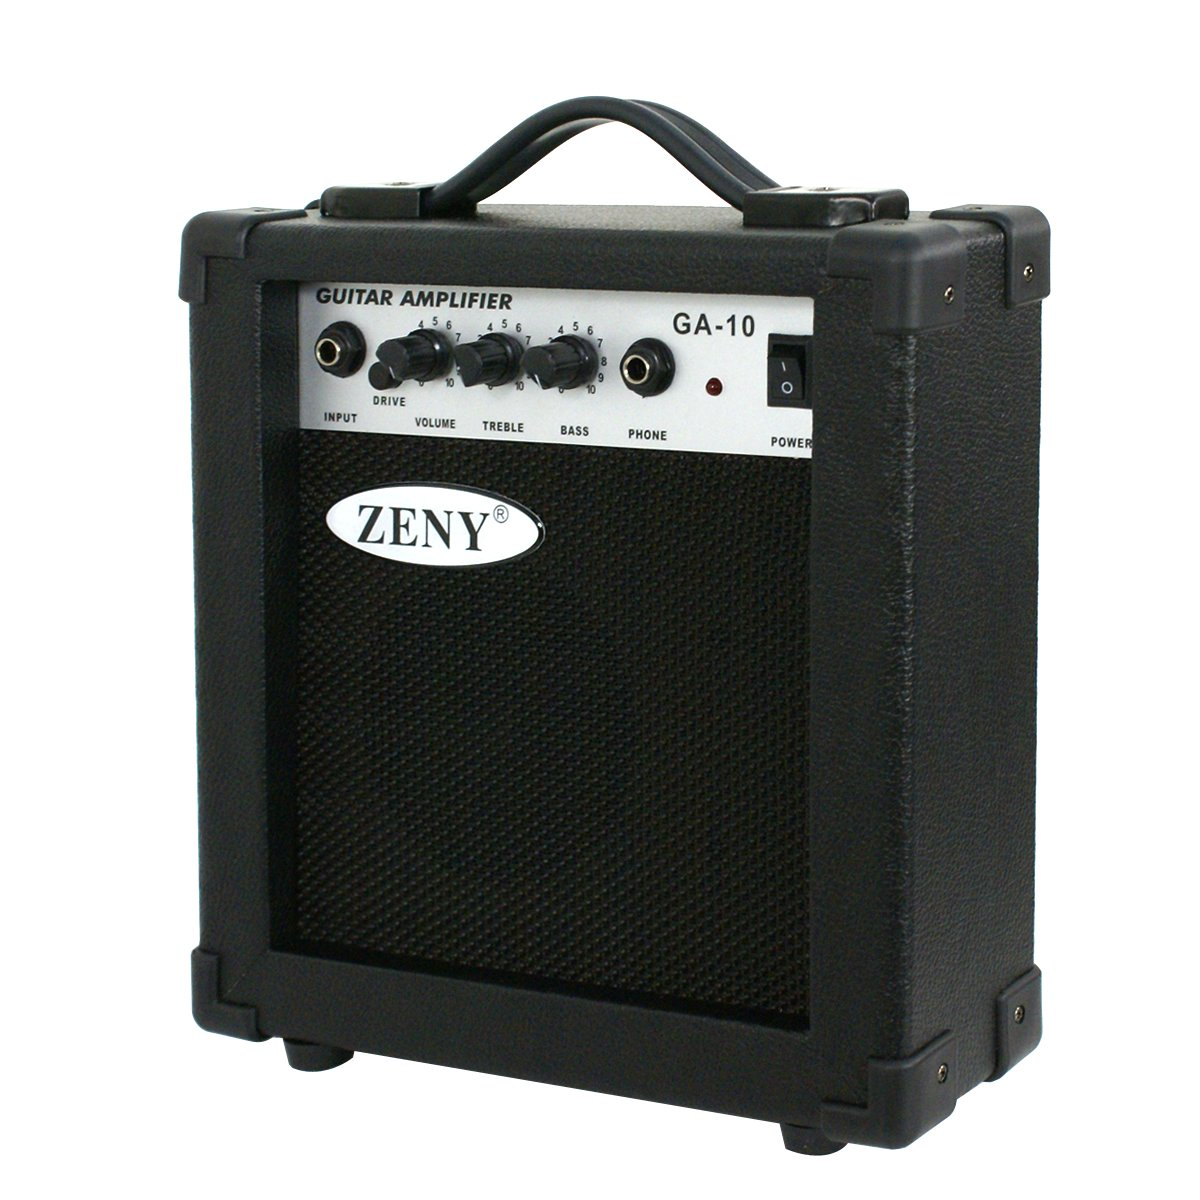 Amplifier that comes with the Blue ZENY Electric Guitar